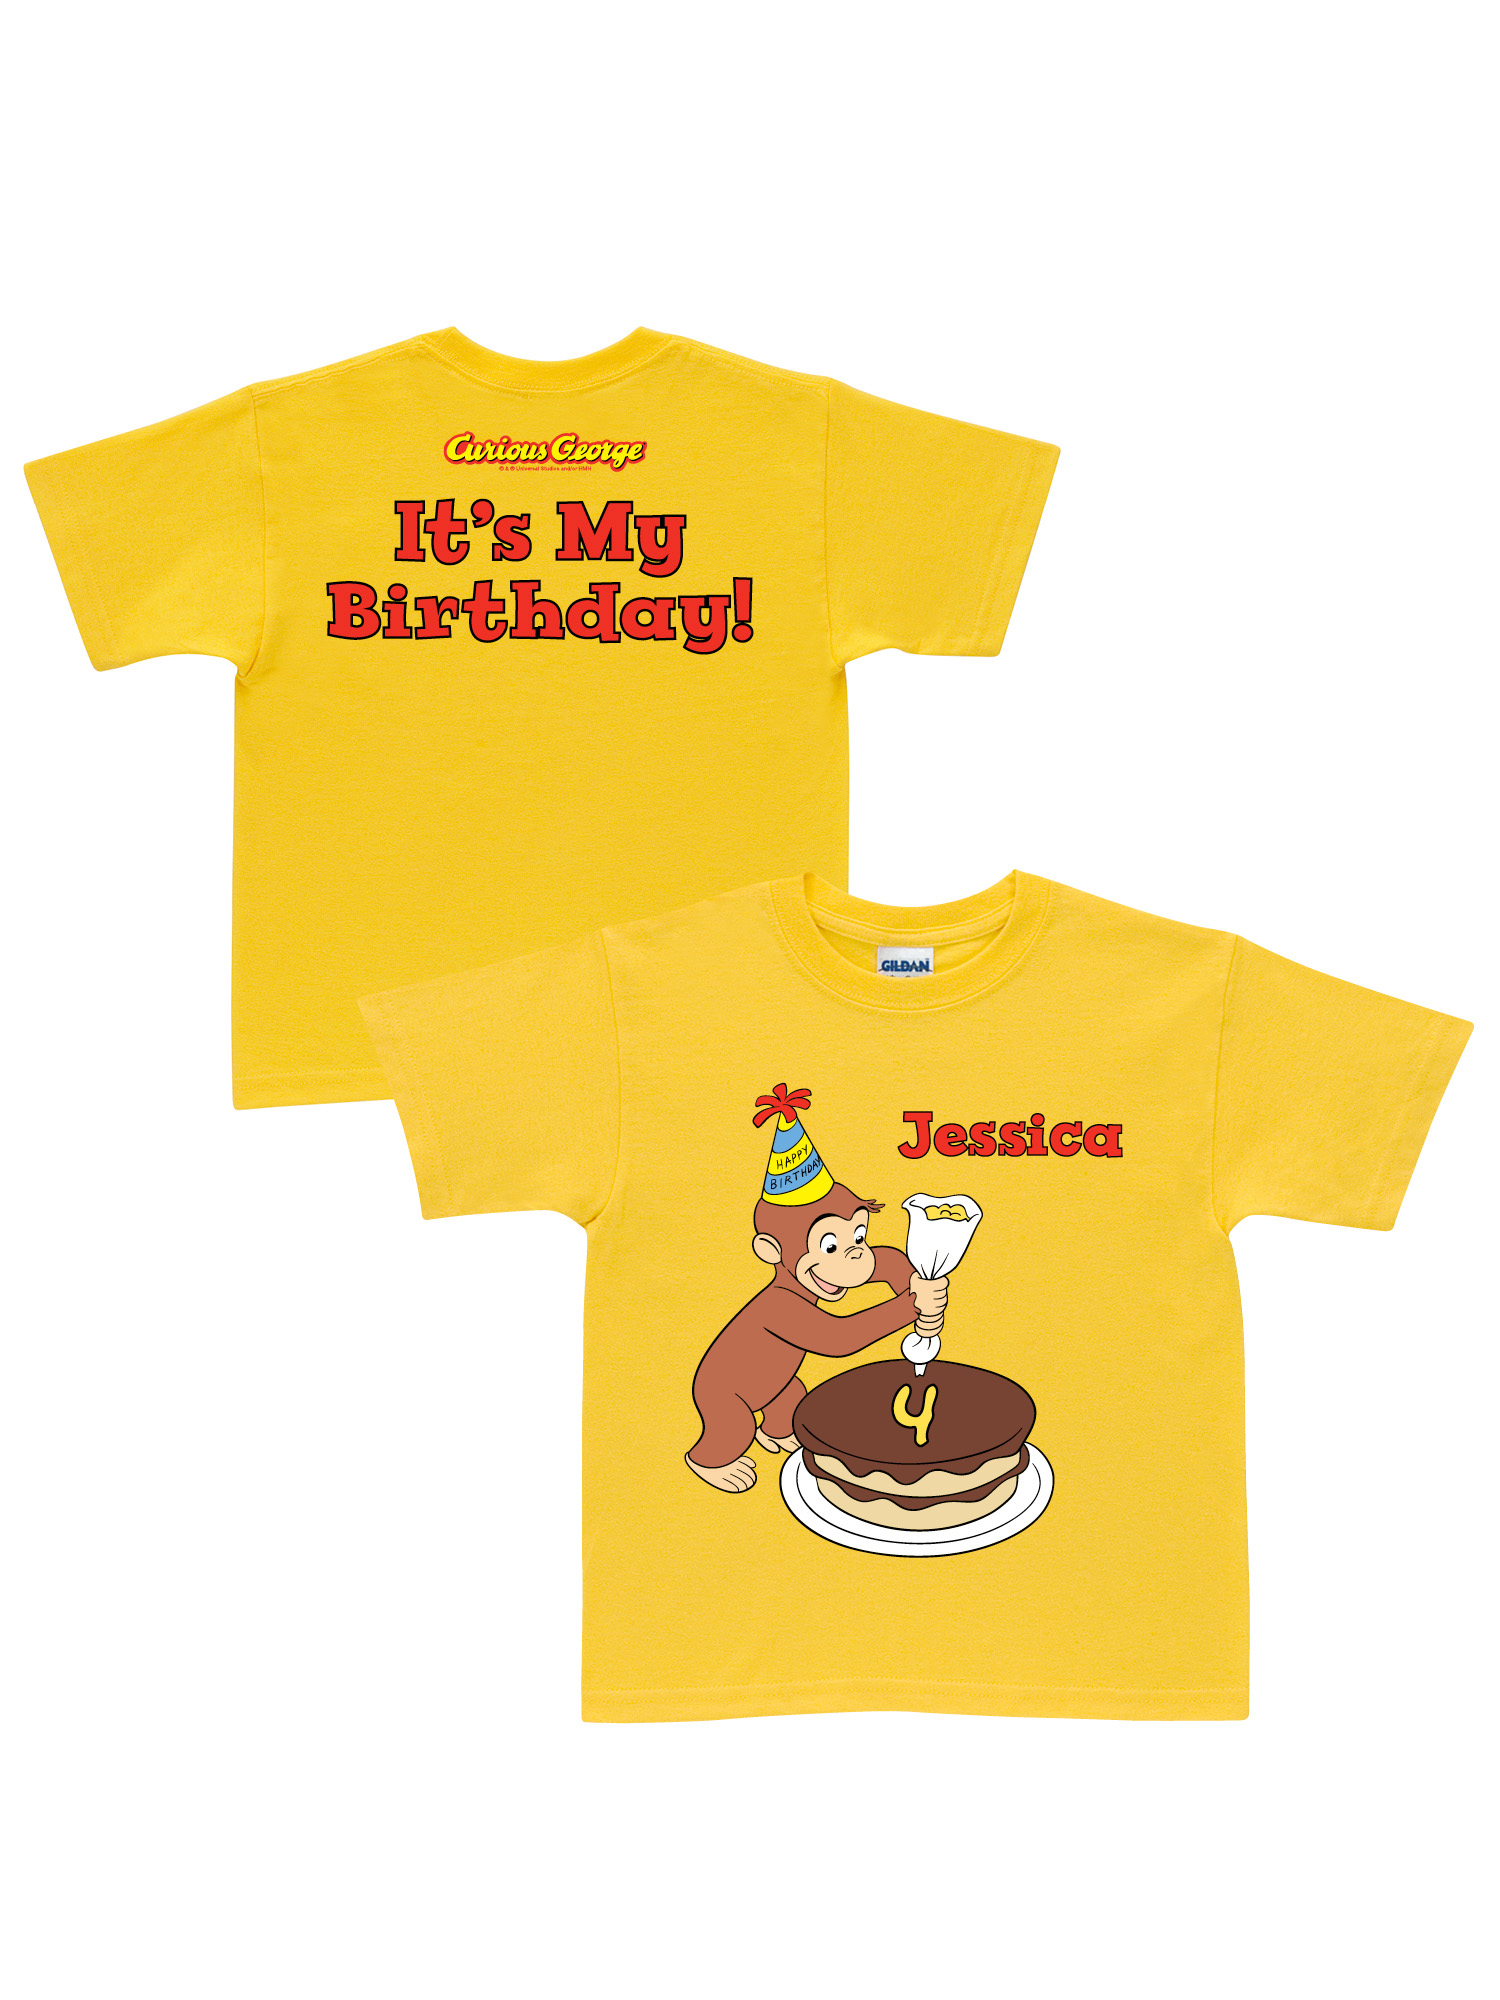 Monkey Business Short Sleeve Yellow Baby Shirt 4 Preemie Newborn Infant Sizes